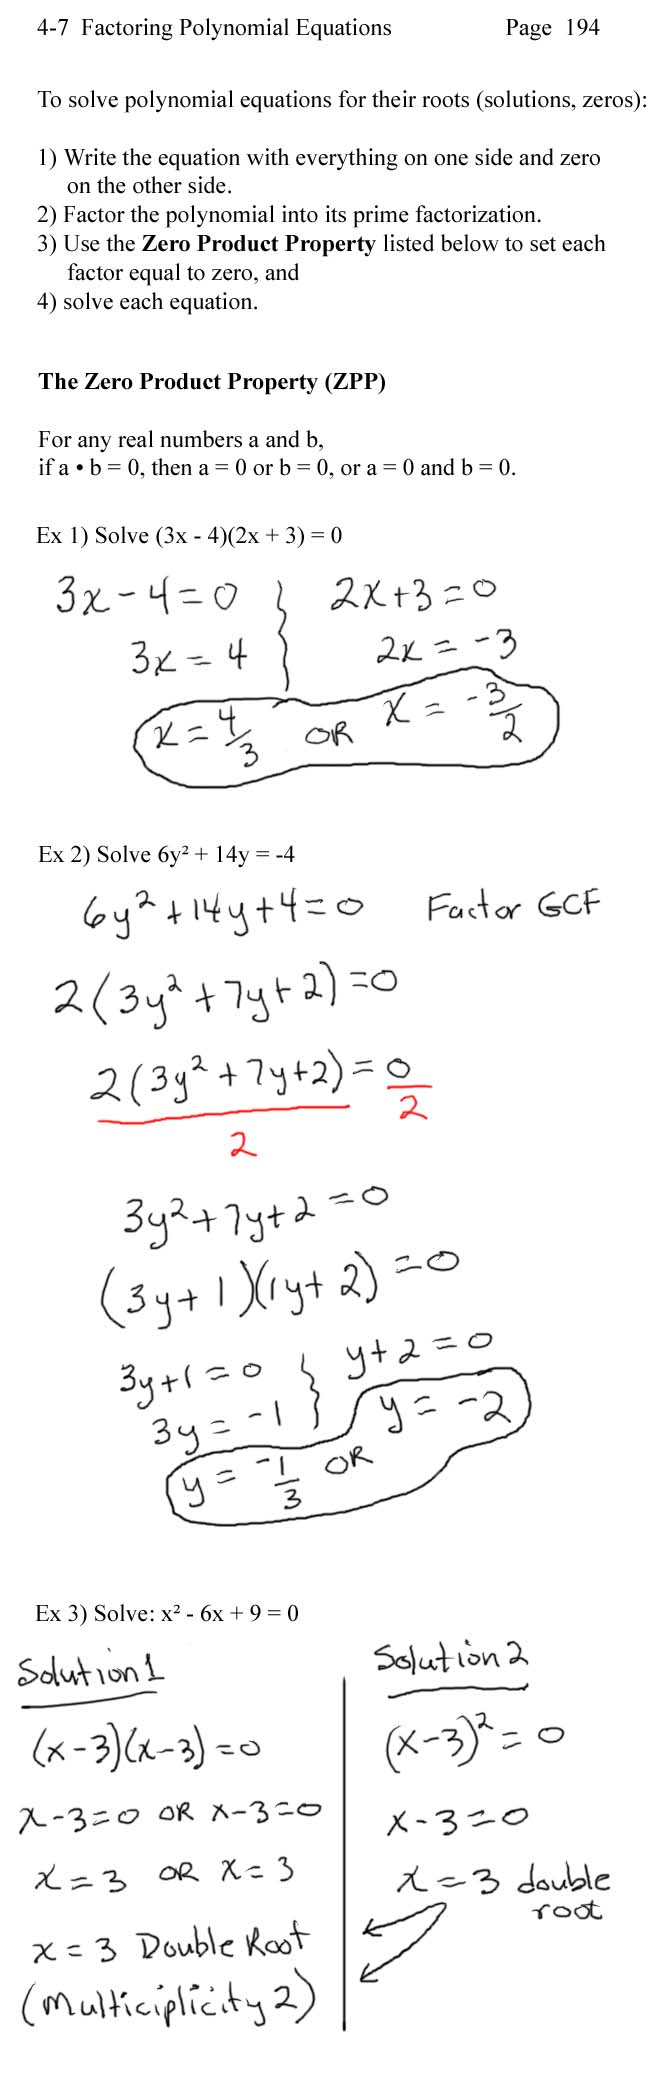 Lecture Notes – Algebra 2 Factoring Polynomials Worksheet